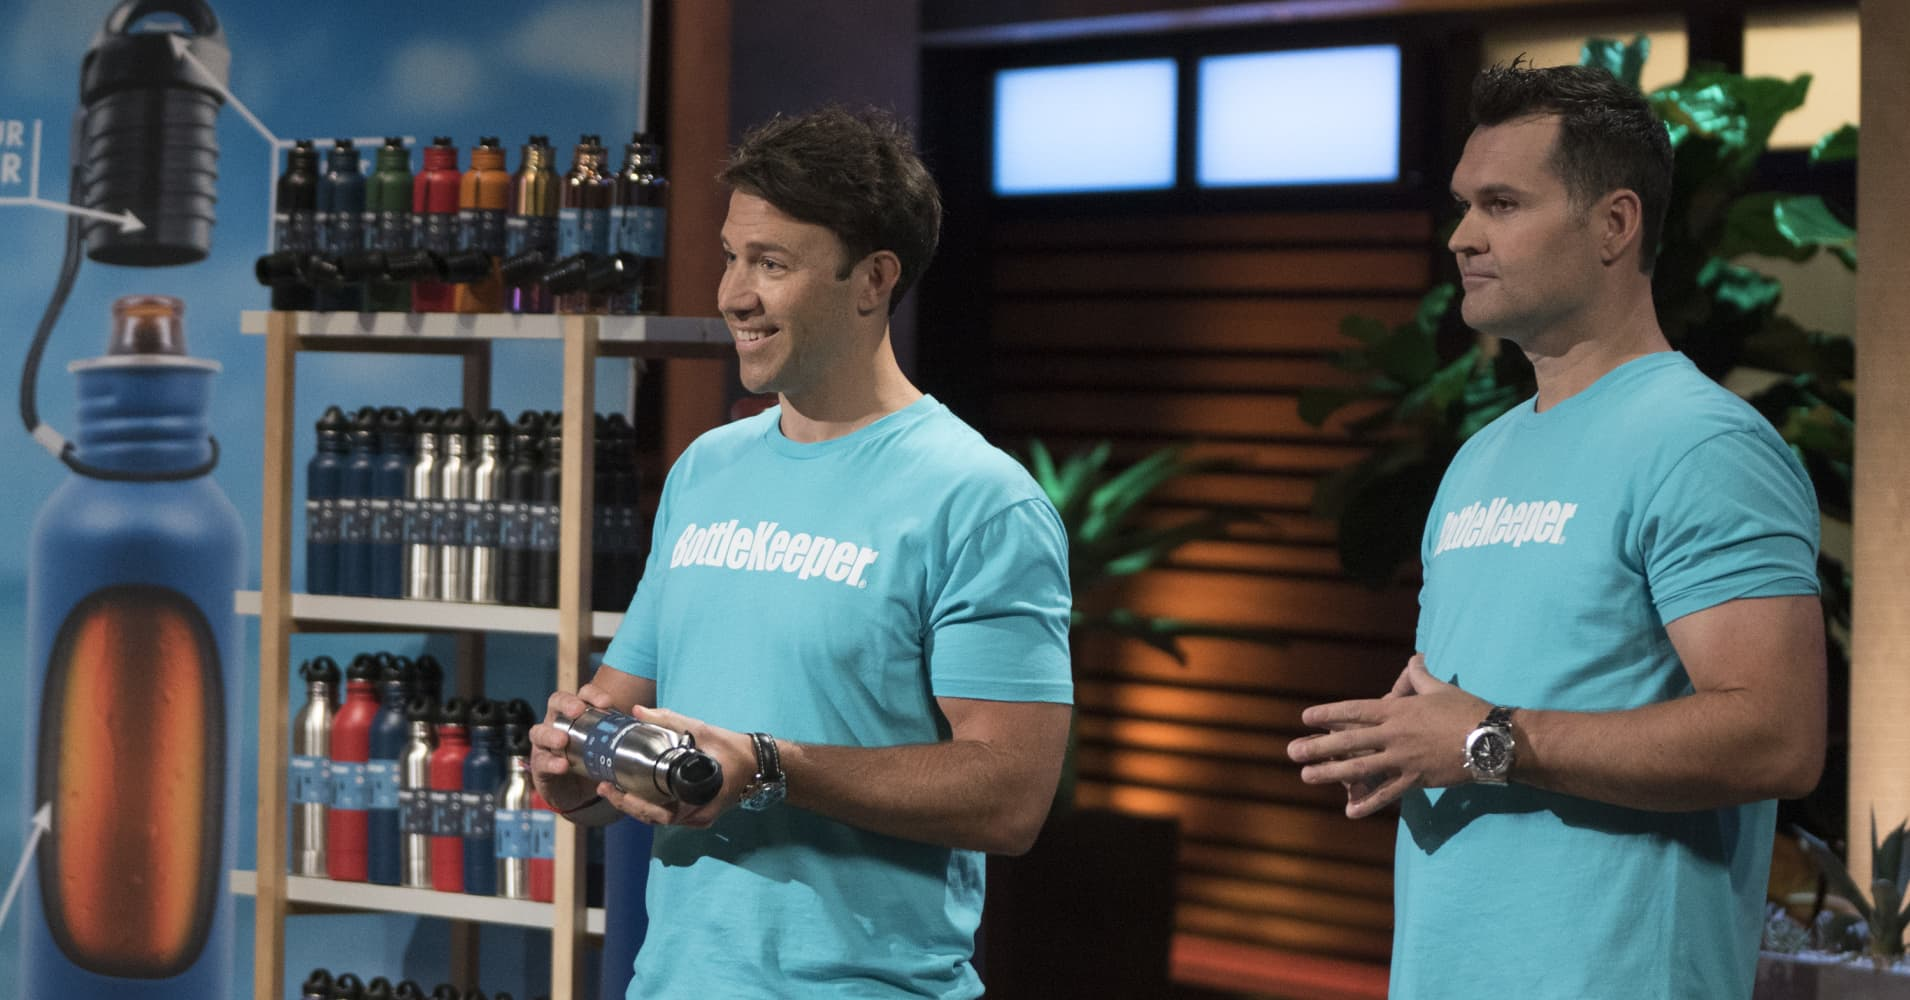 Bottlekeeper keeps beer cold, won million-dollar deal on 'Shark Tank'